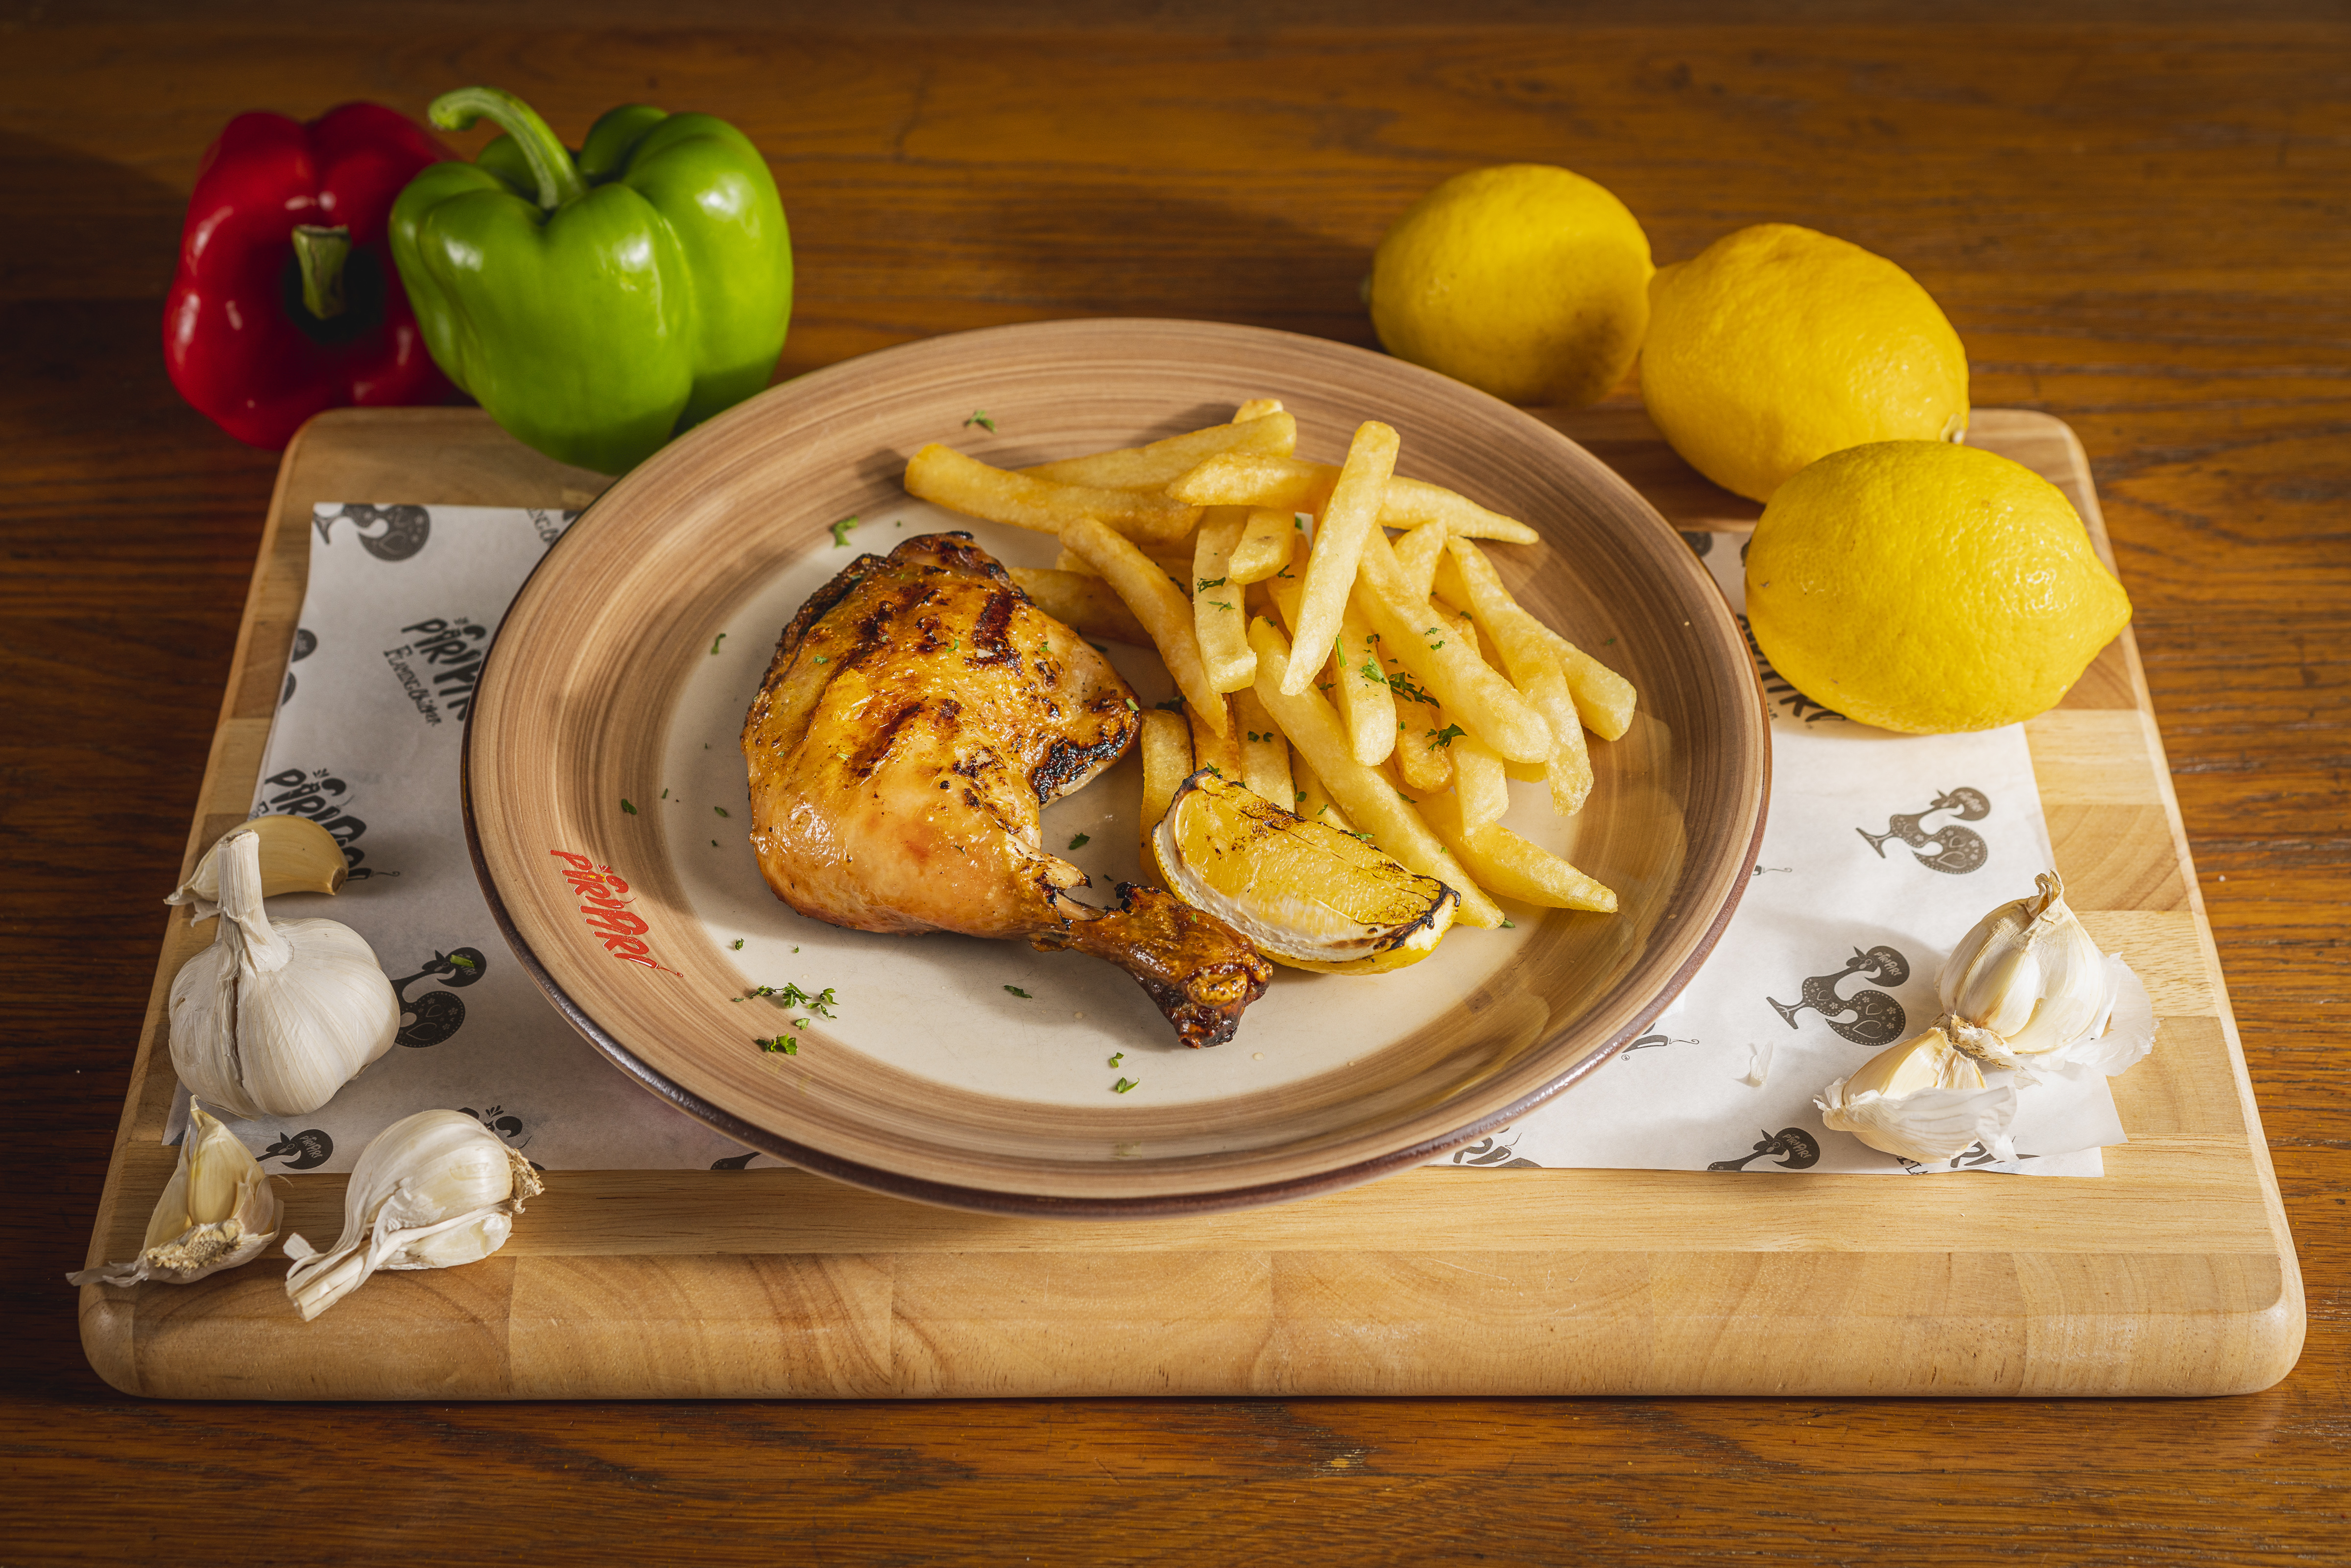 Quarter chicken with French fries